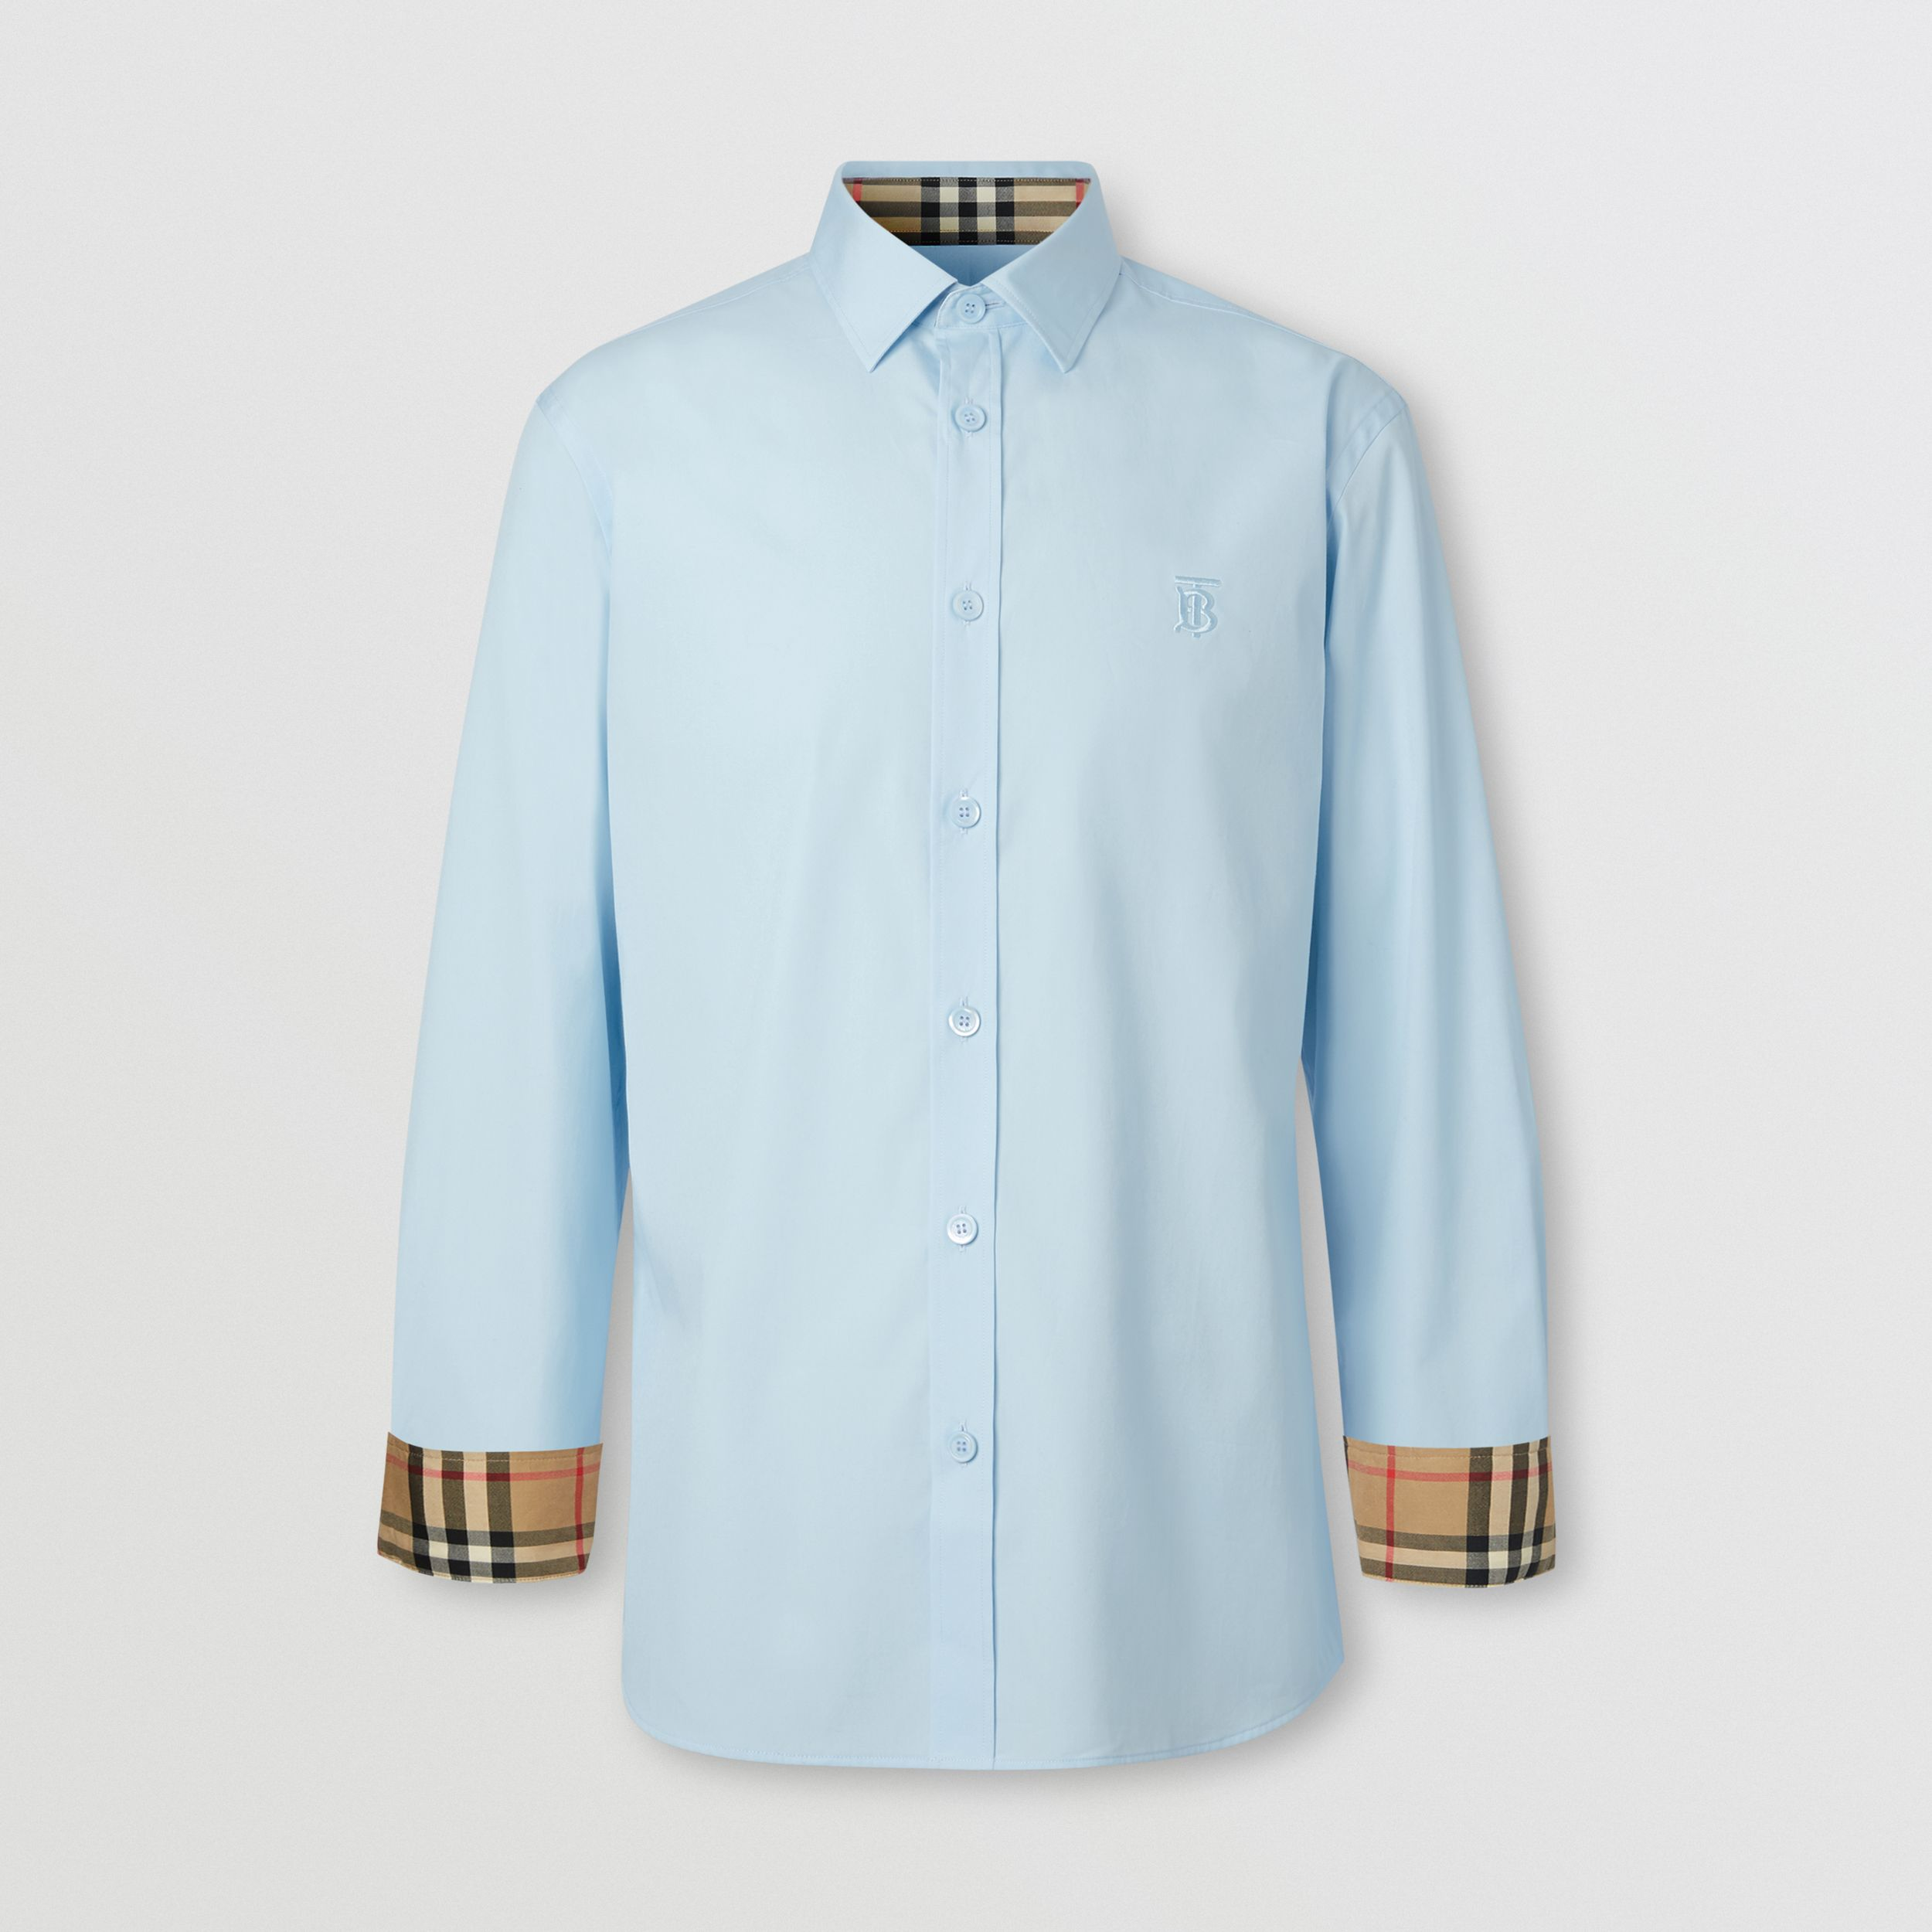 Slim Fit Monogram Motif Stretch Cotton Poplin Shirt in Pale Blue - Men | Burberry - 4